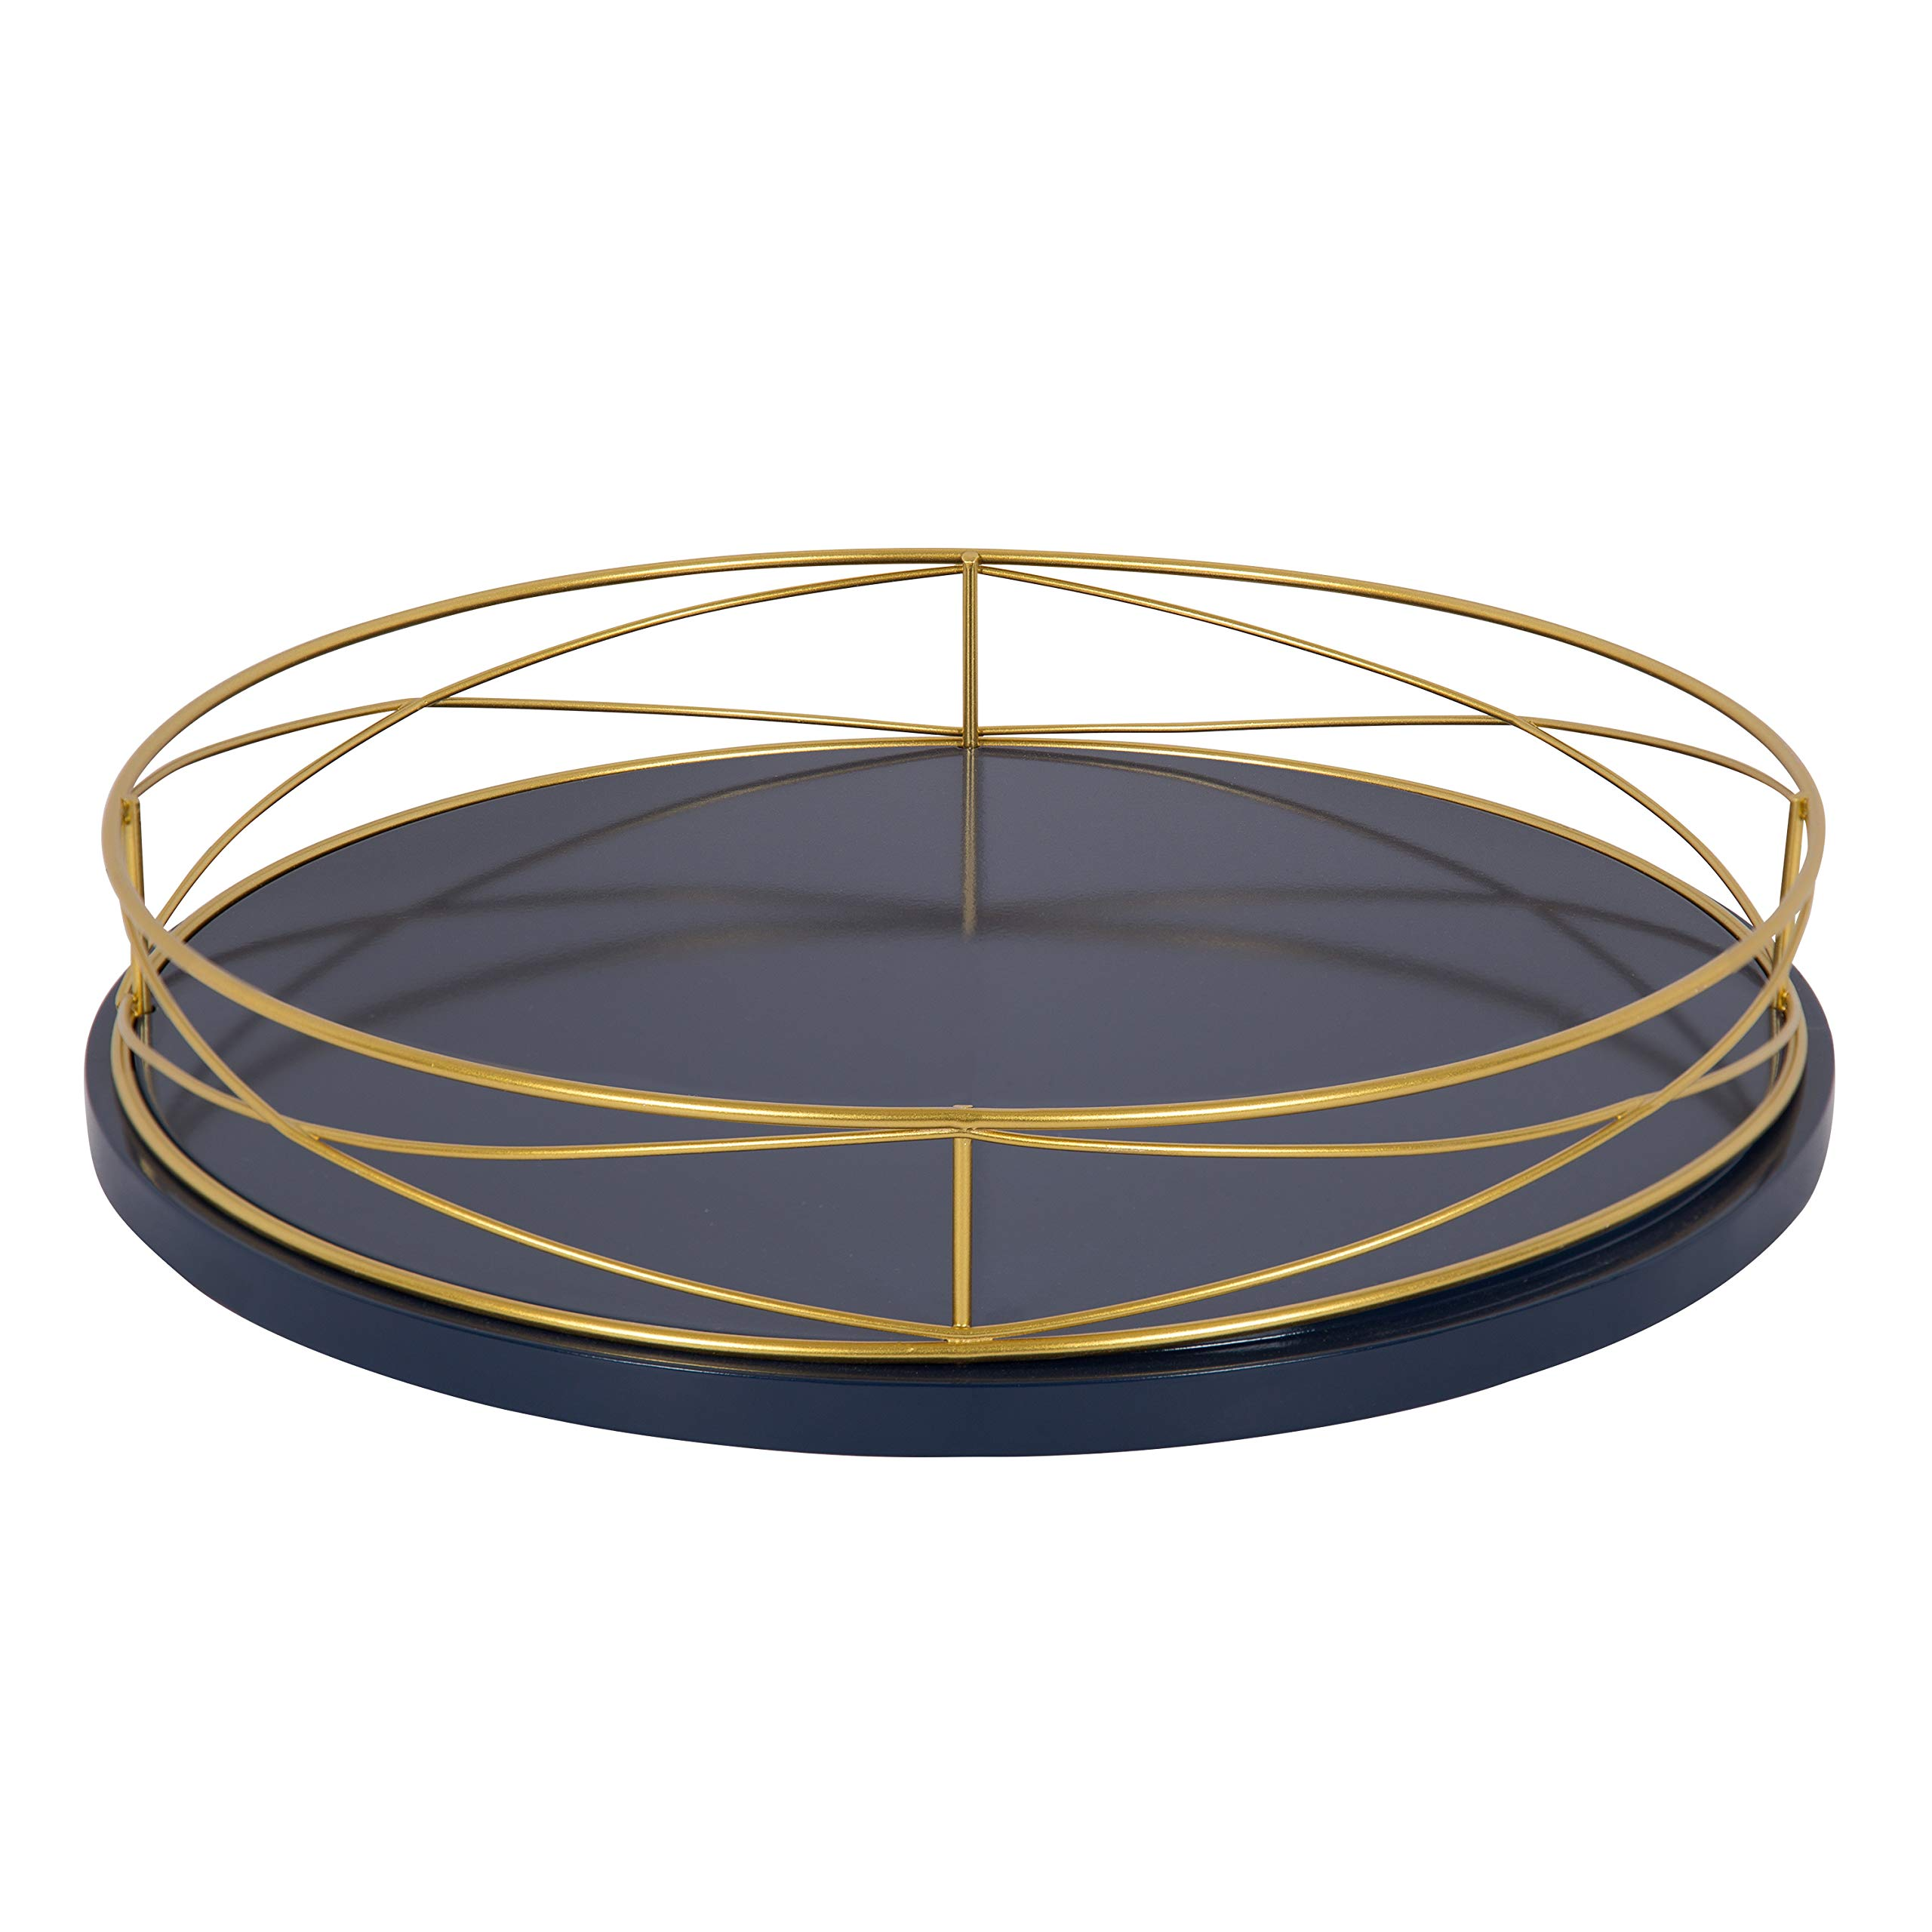 Kate and Laurel Mendel 14 Inch Round Tray with Decorative Metal Rim, Navy Blue and Gold by Kate and Laurel